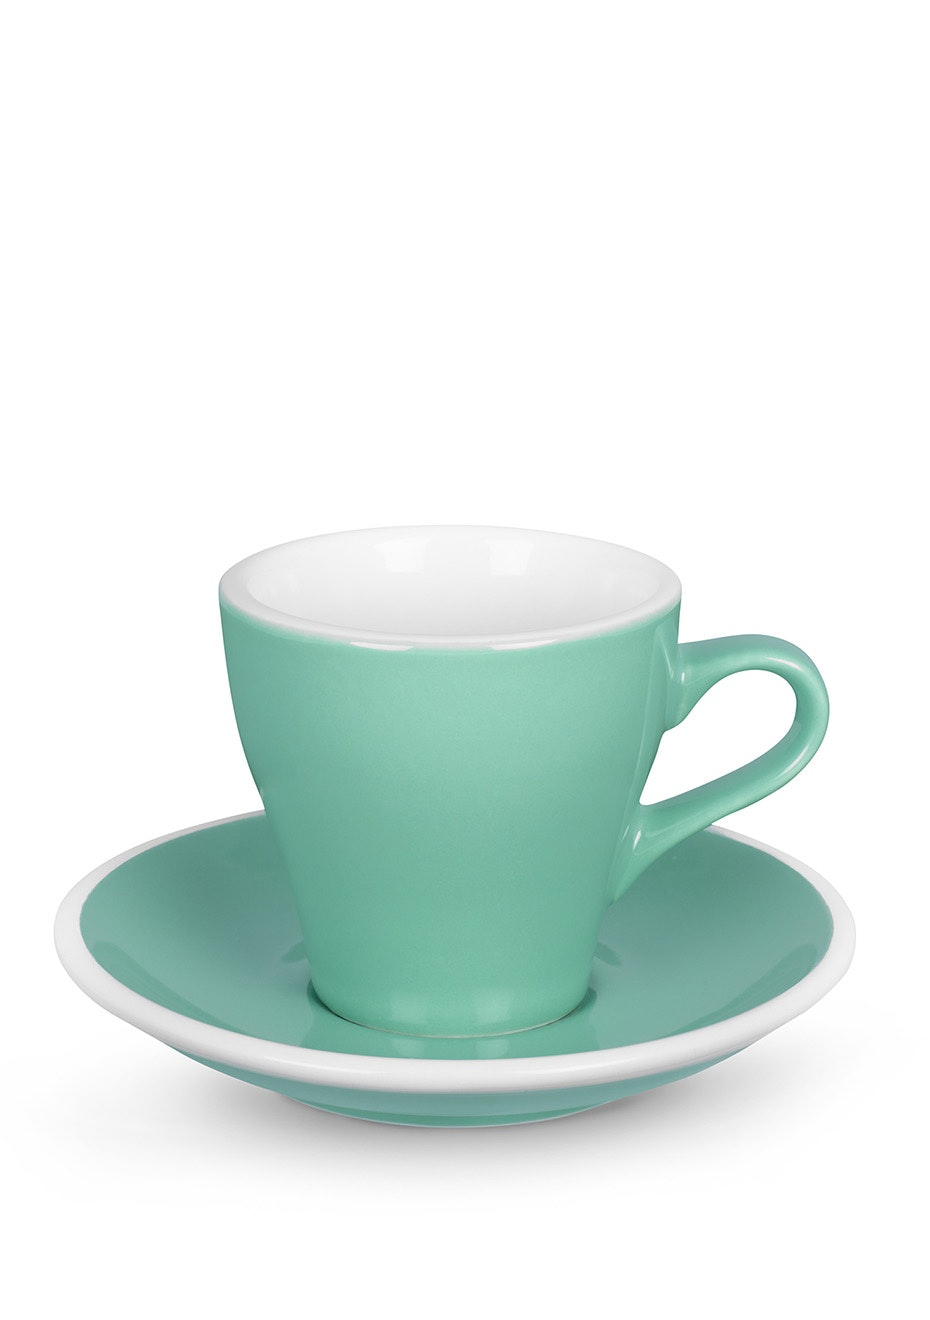 ACME Pack of 6 - Tulip Cup & Saucer 170ml - Green